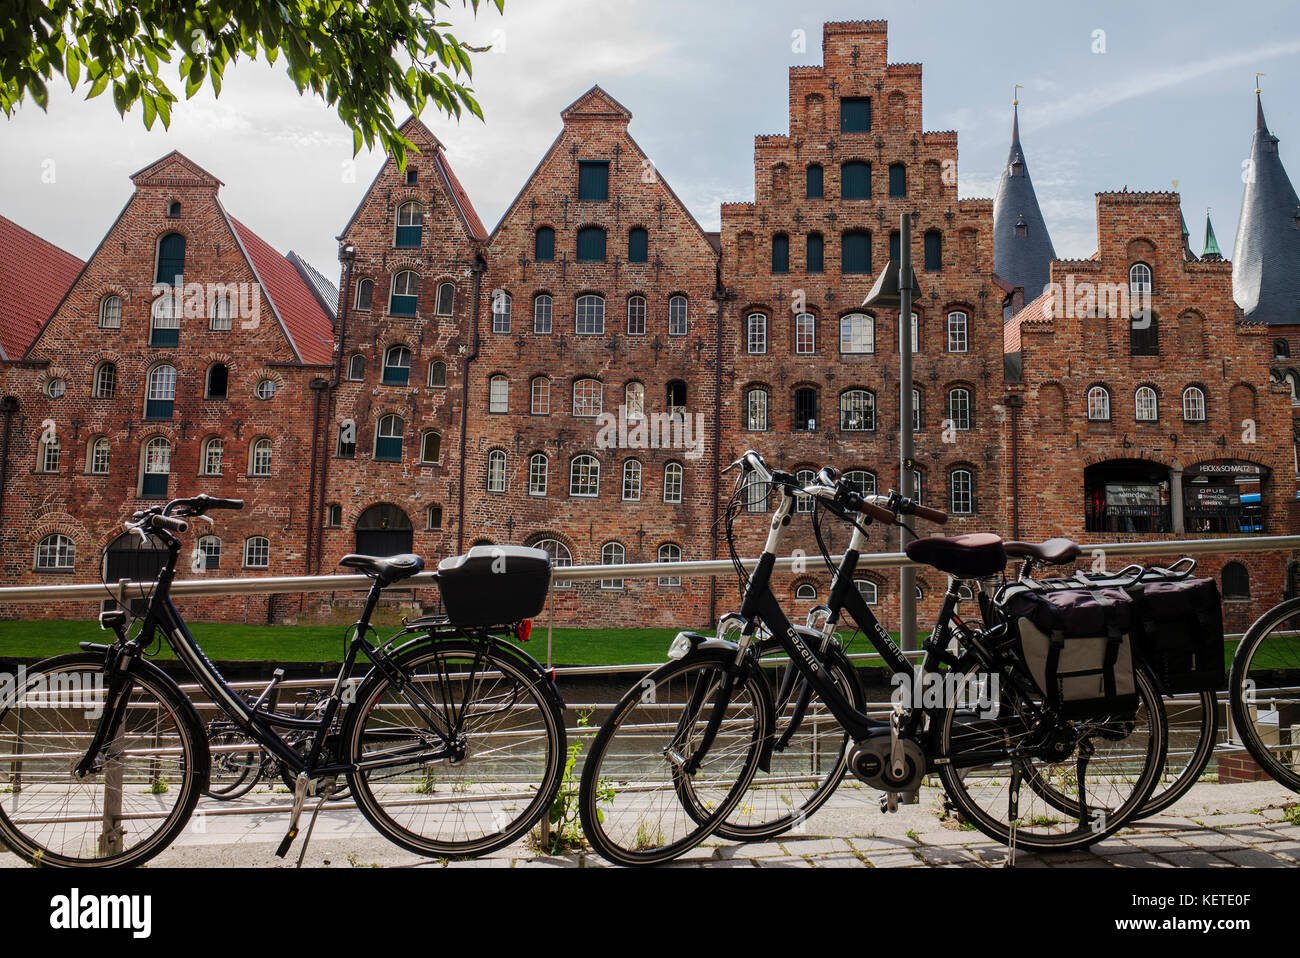 lubeck The Salzspeicher,salt storehouses,red brick buildings on the river,Lübeck, Germany - Stock Image